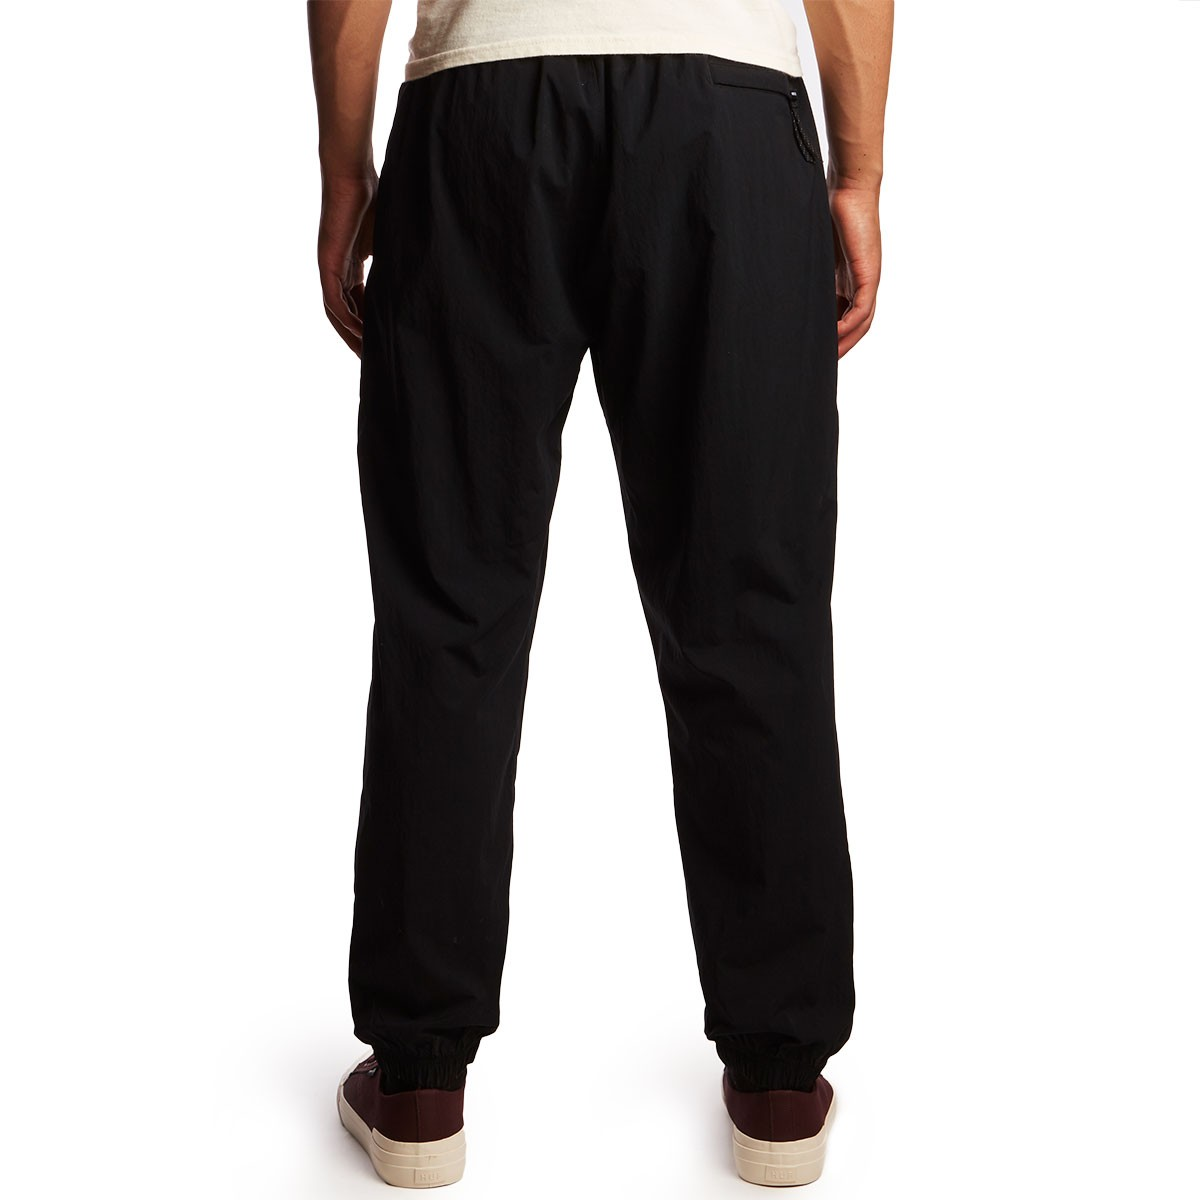 3d00bfac Nike SB Flex Track Pants - Black/White - LG